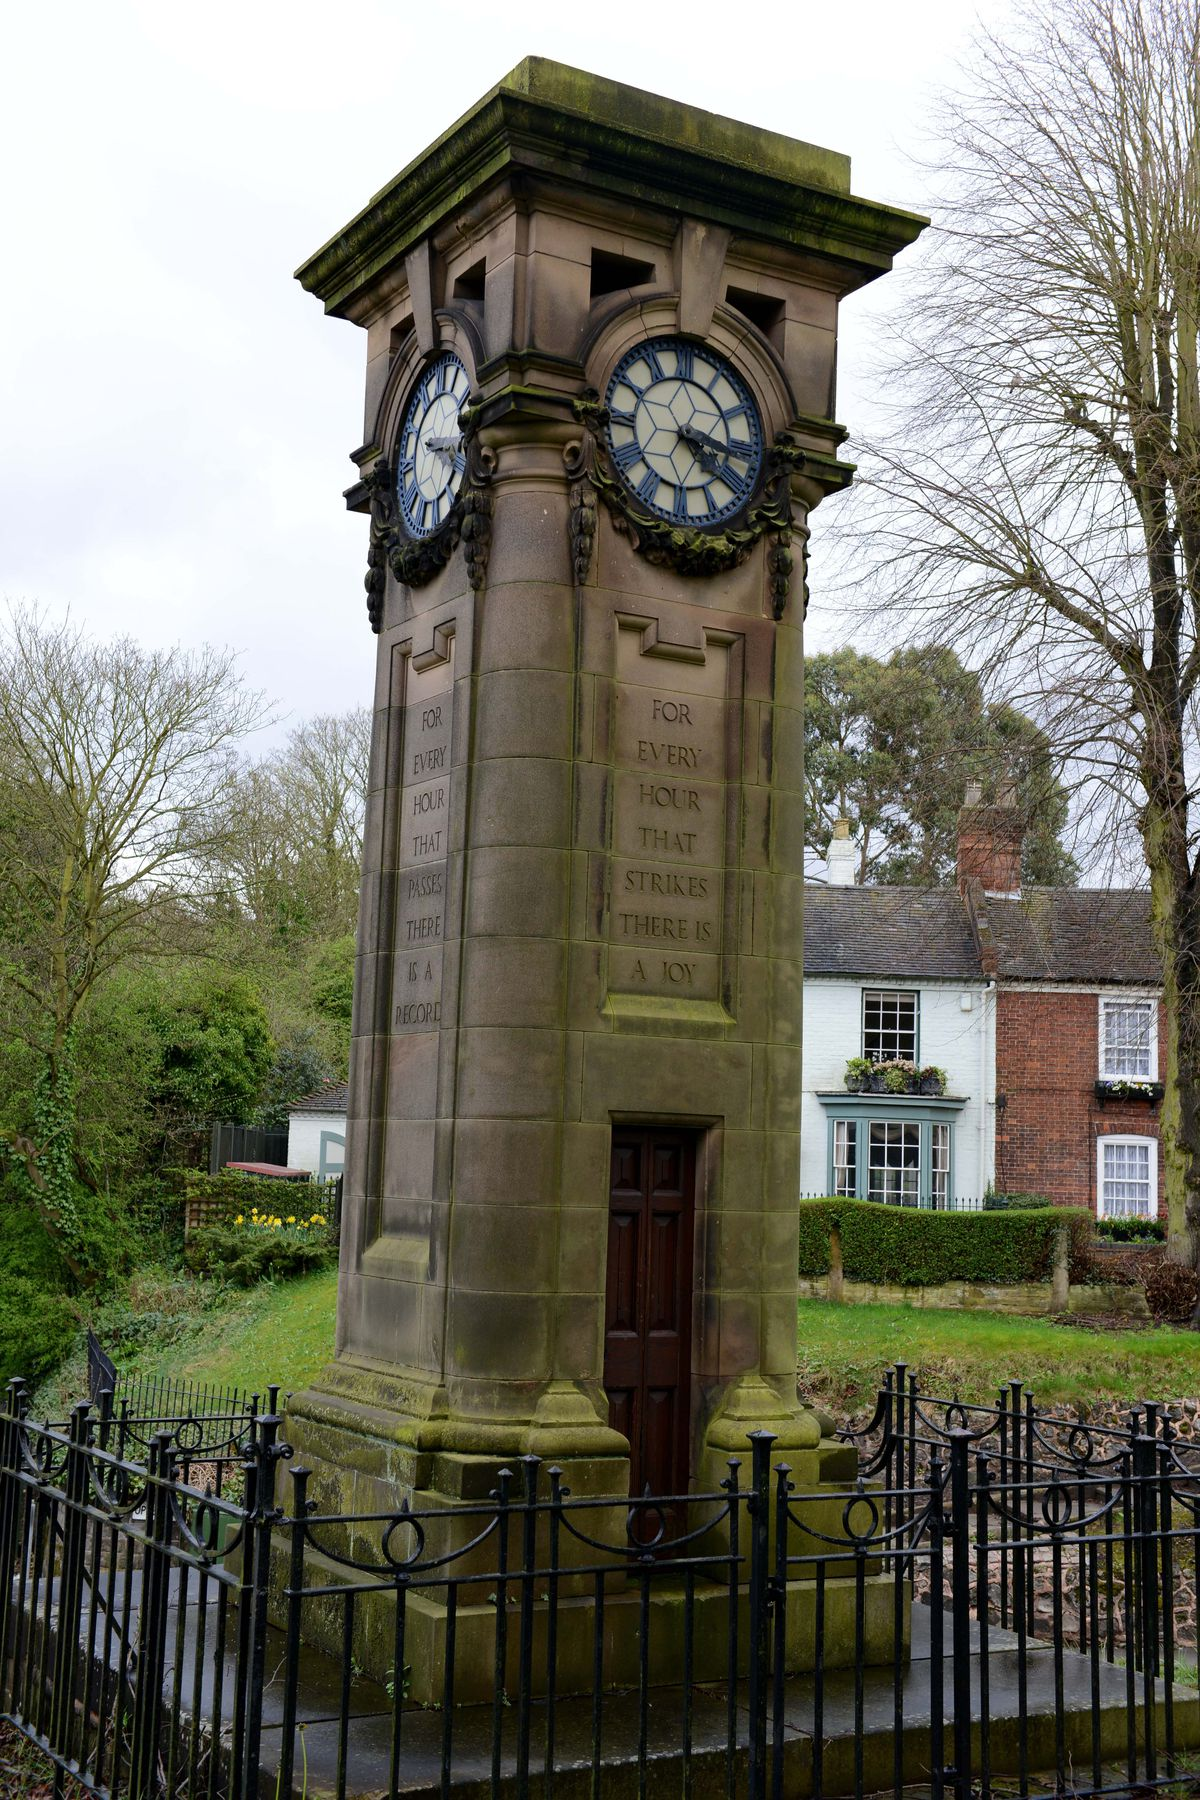 The clock tower remains a much-loved local landmark